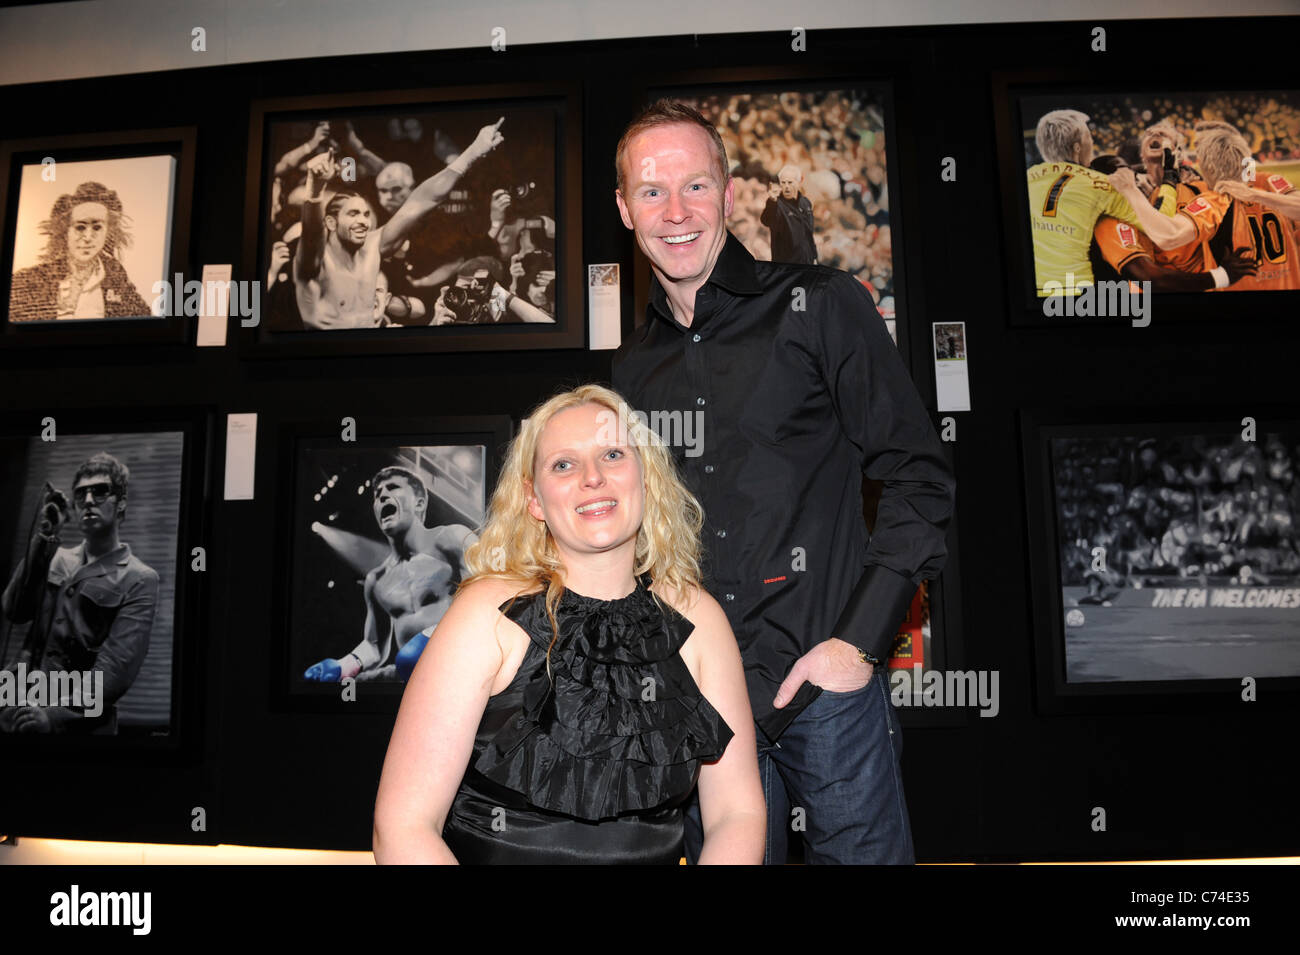 Footballer Jody Craddock with his wife Shelley at the launch of his Art Exhibition at Wolverhampton's Castle - Stock Image